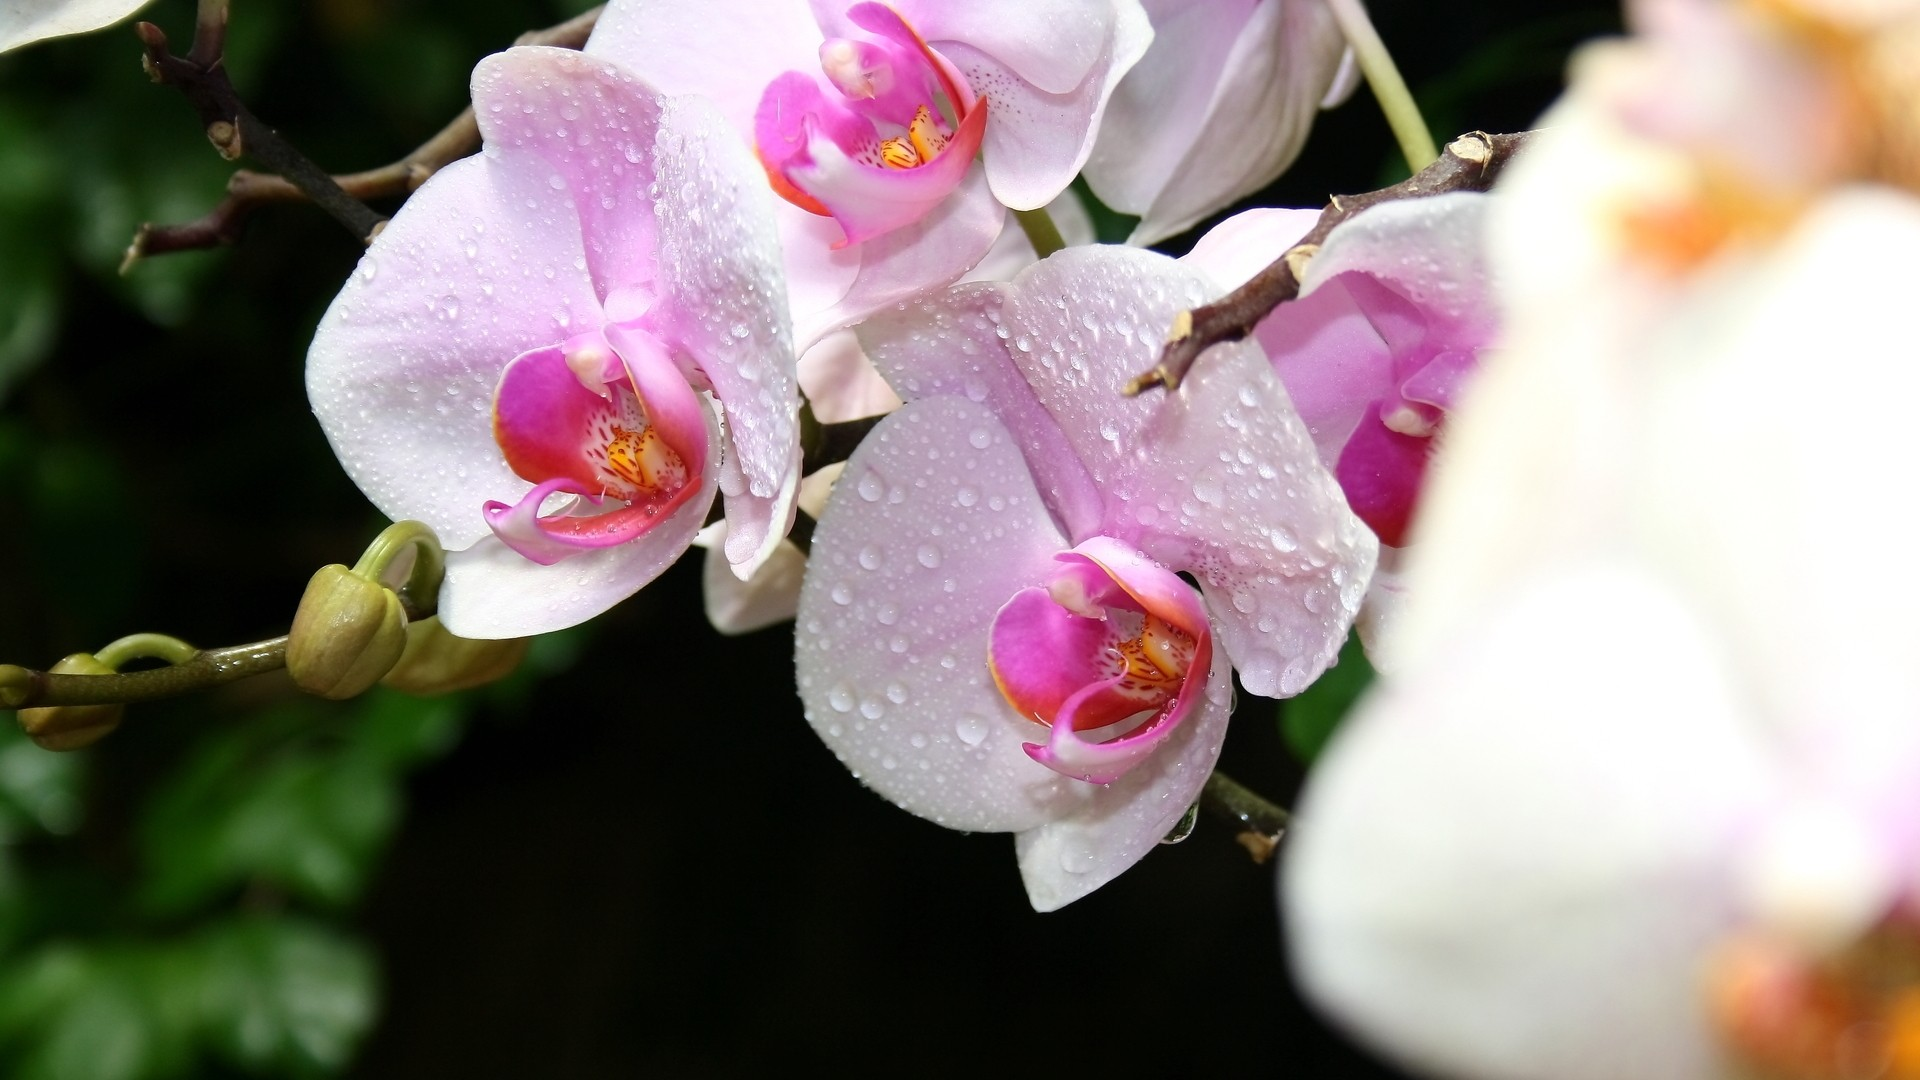 Orchid hd wallpaper download